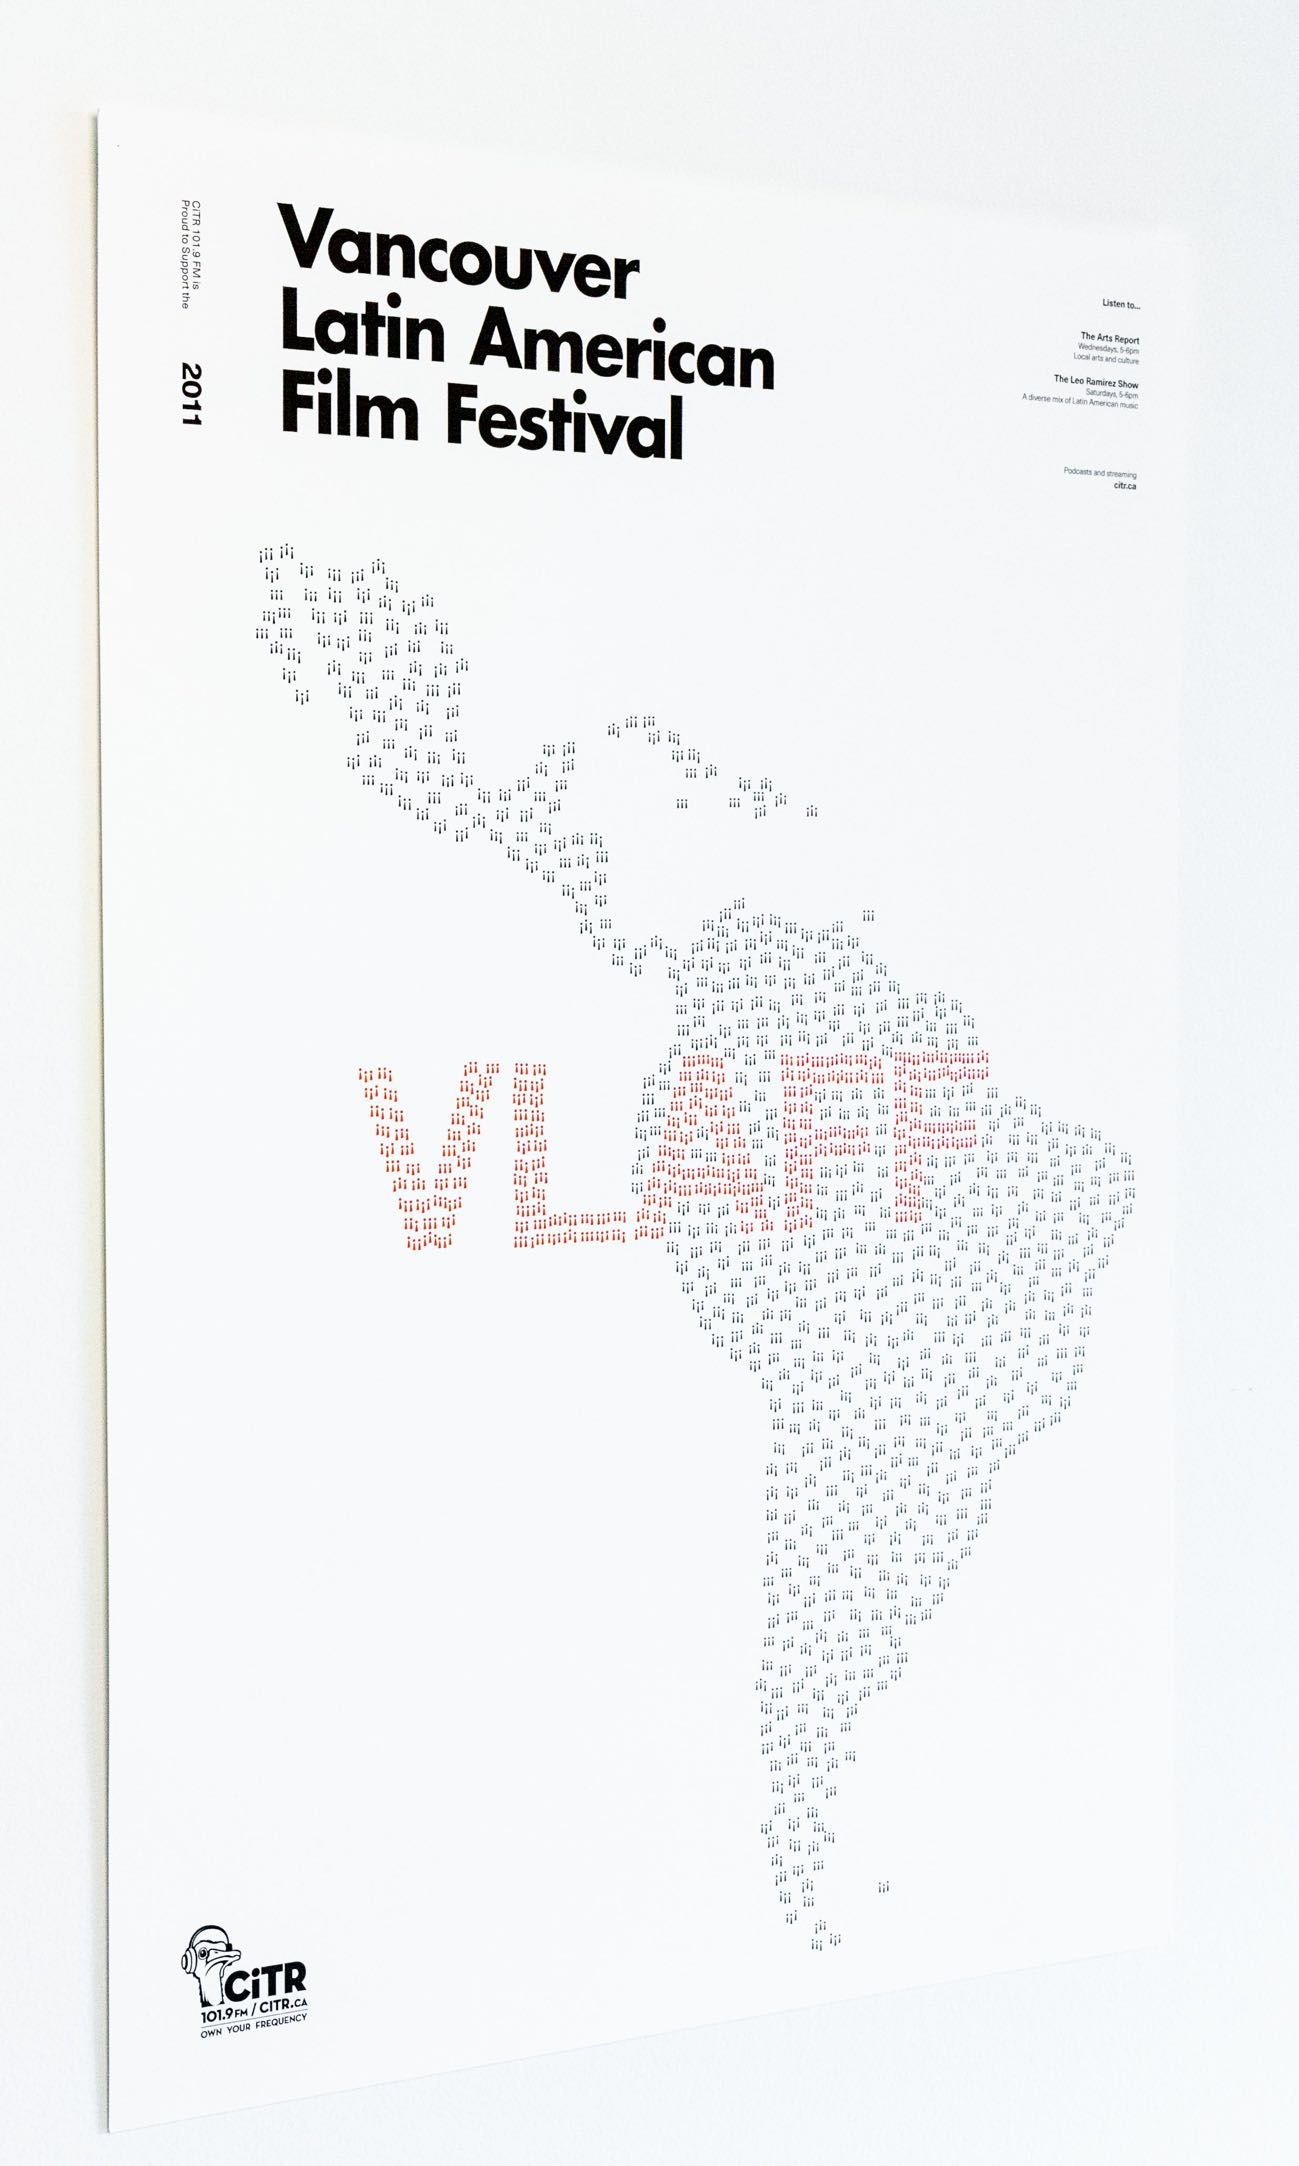 Poster using exclamation marks to form a shape of Latin America screaming out VLAFF — by Dima Yagnyuk.